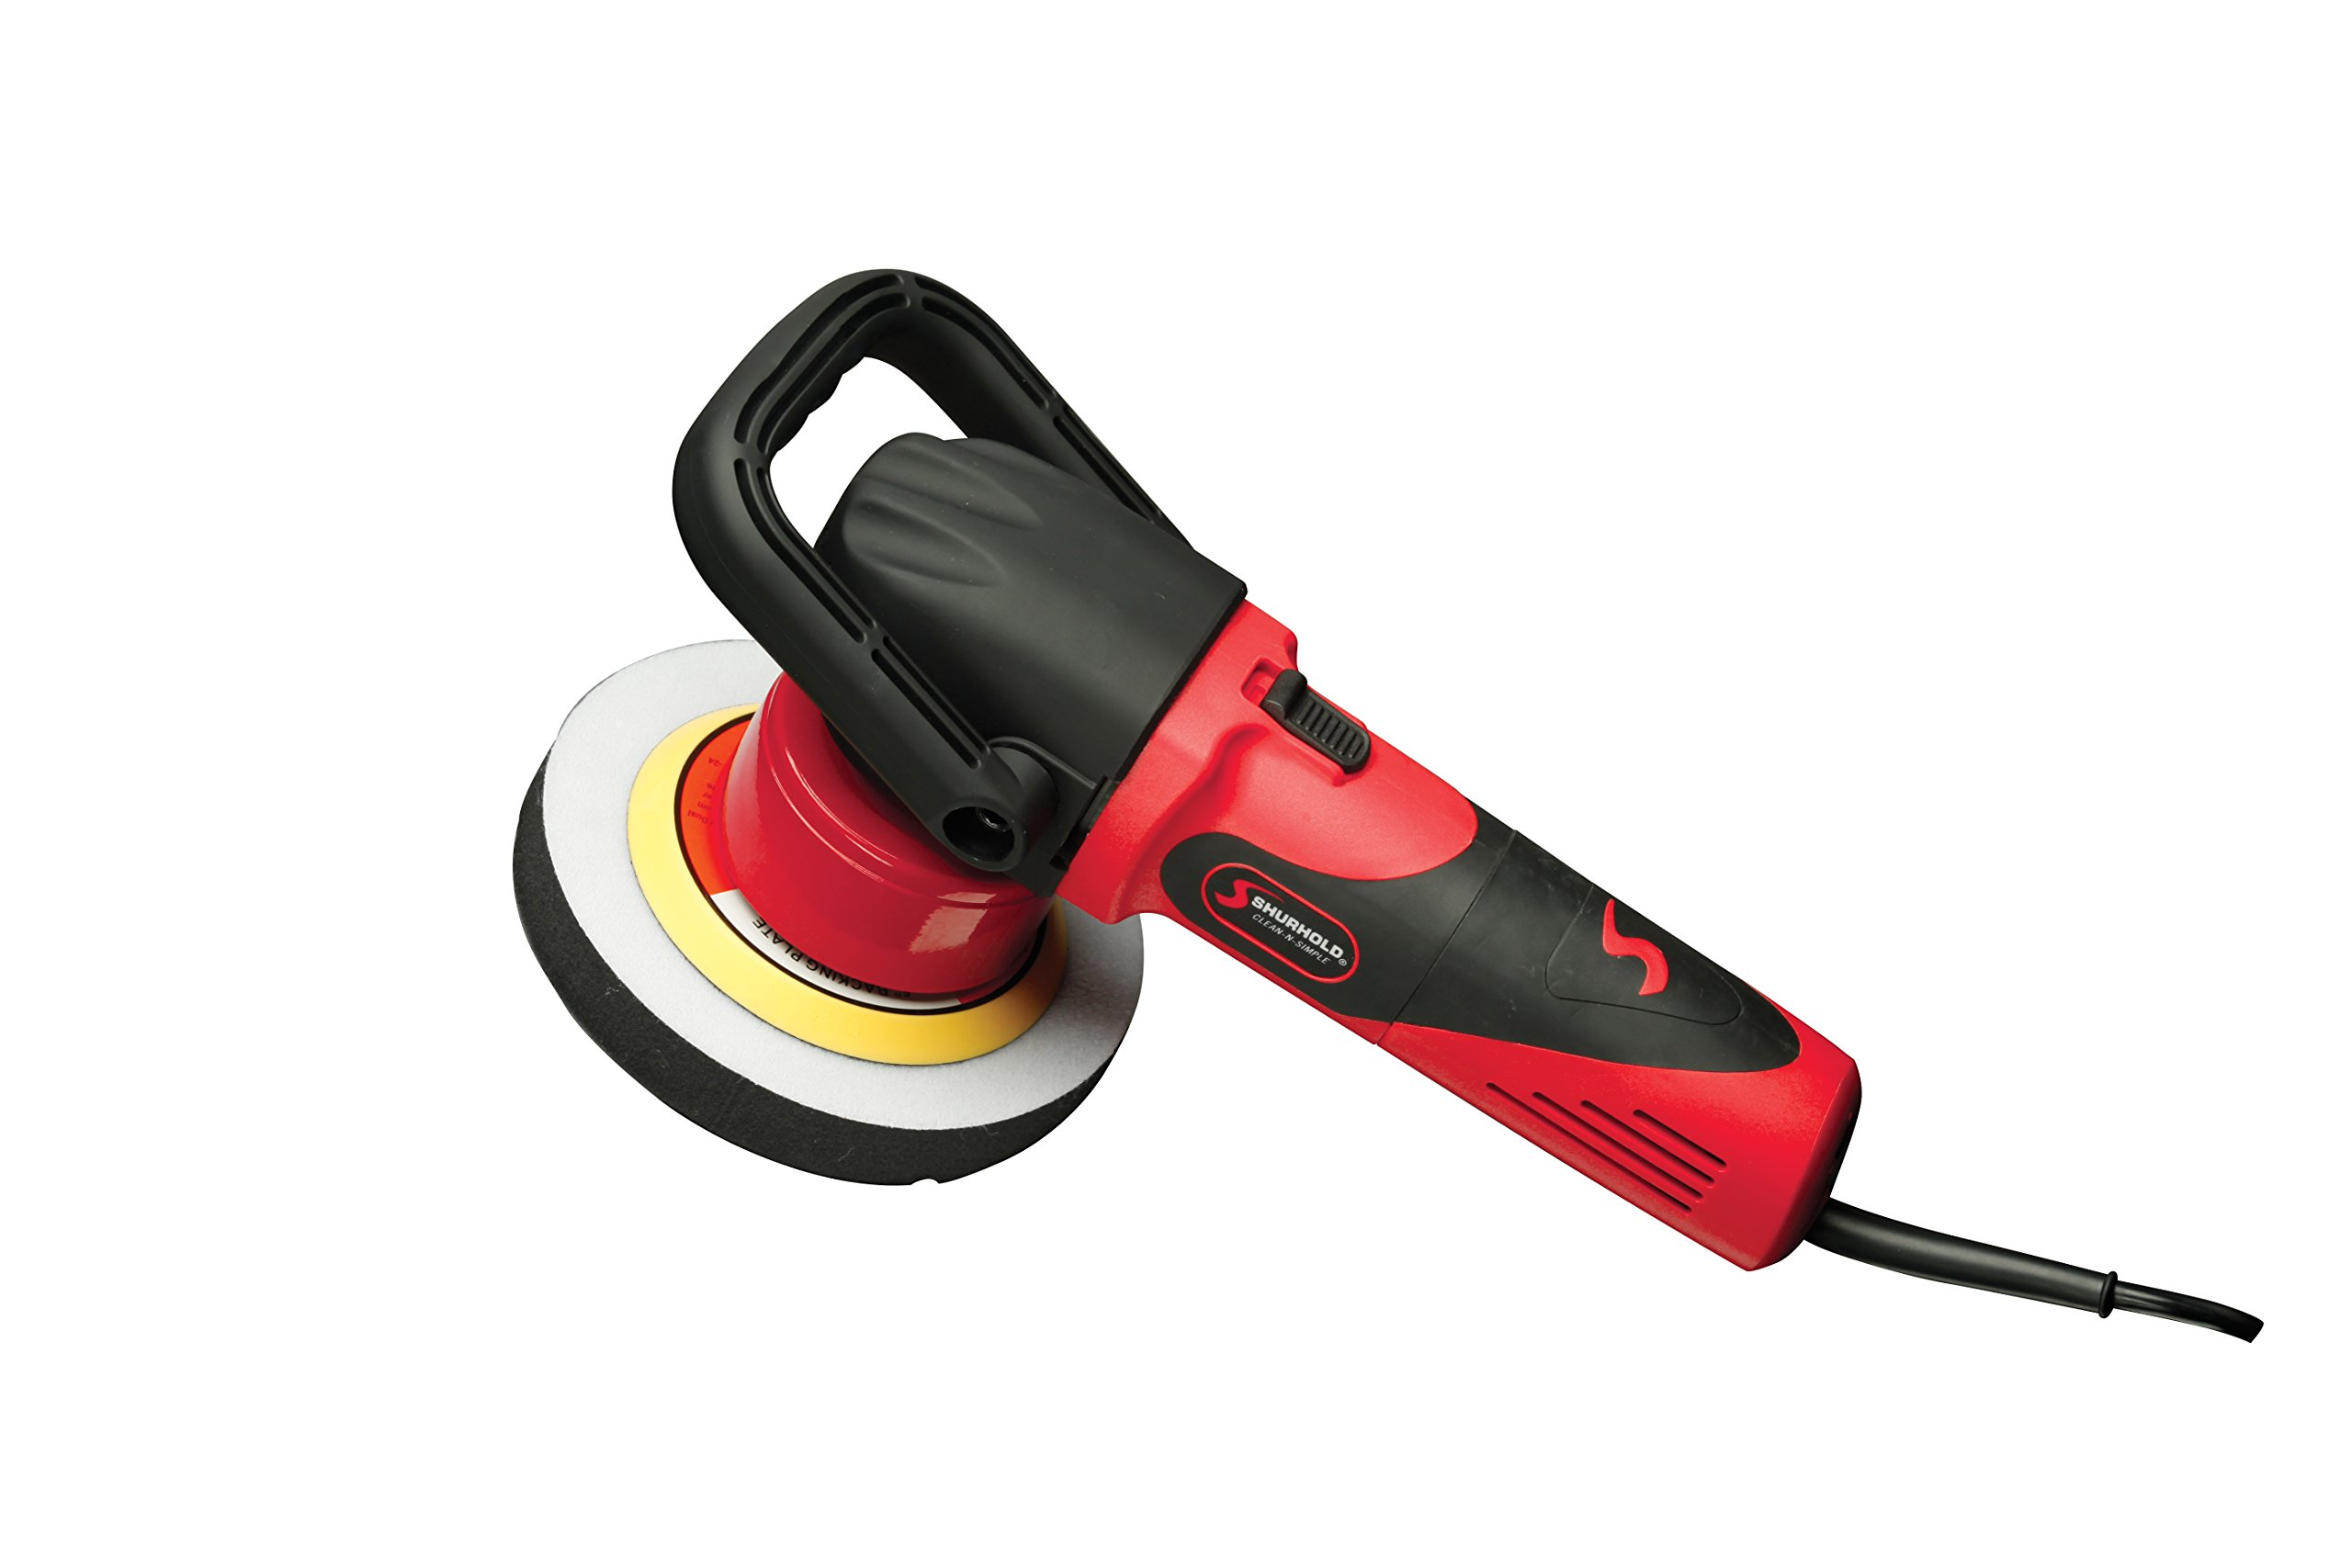 Shurhold 3100 Dual Action Polisher